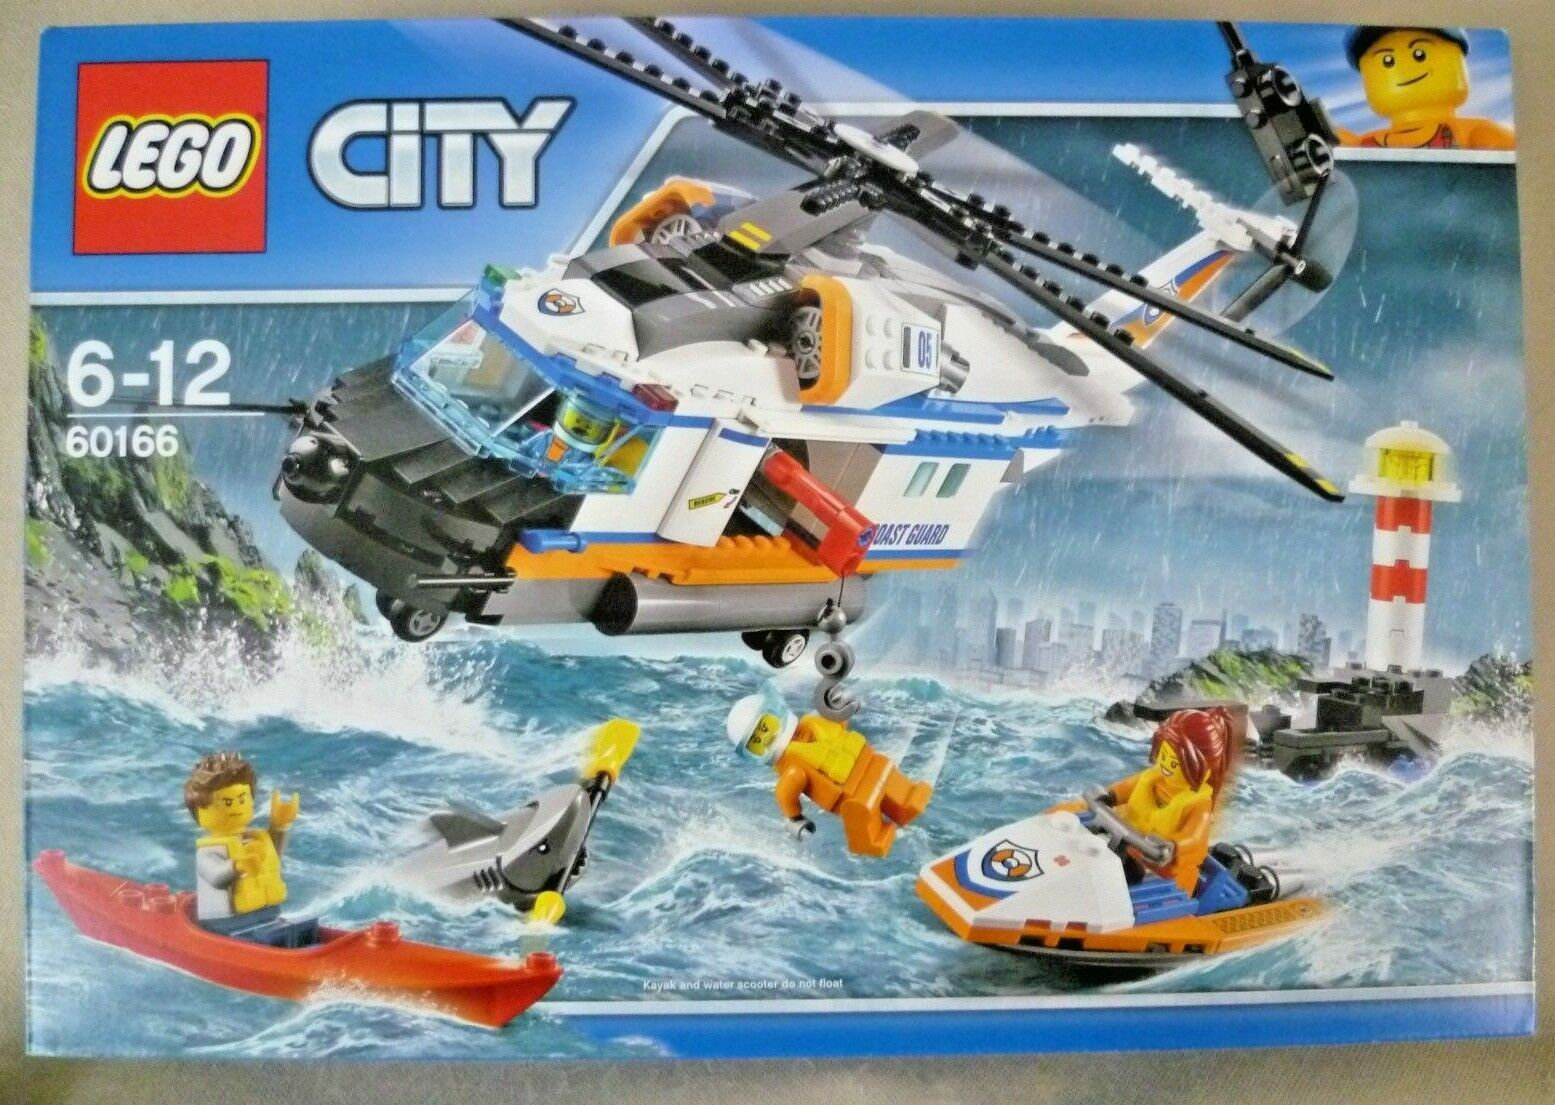 Collectable Lego - Boxed City Set 60166 Heavy Duty Rescue Helicopter - 2017 BNIP